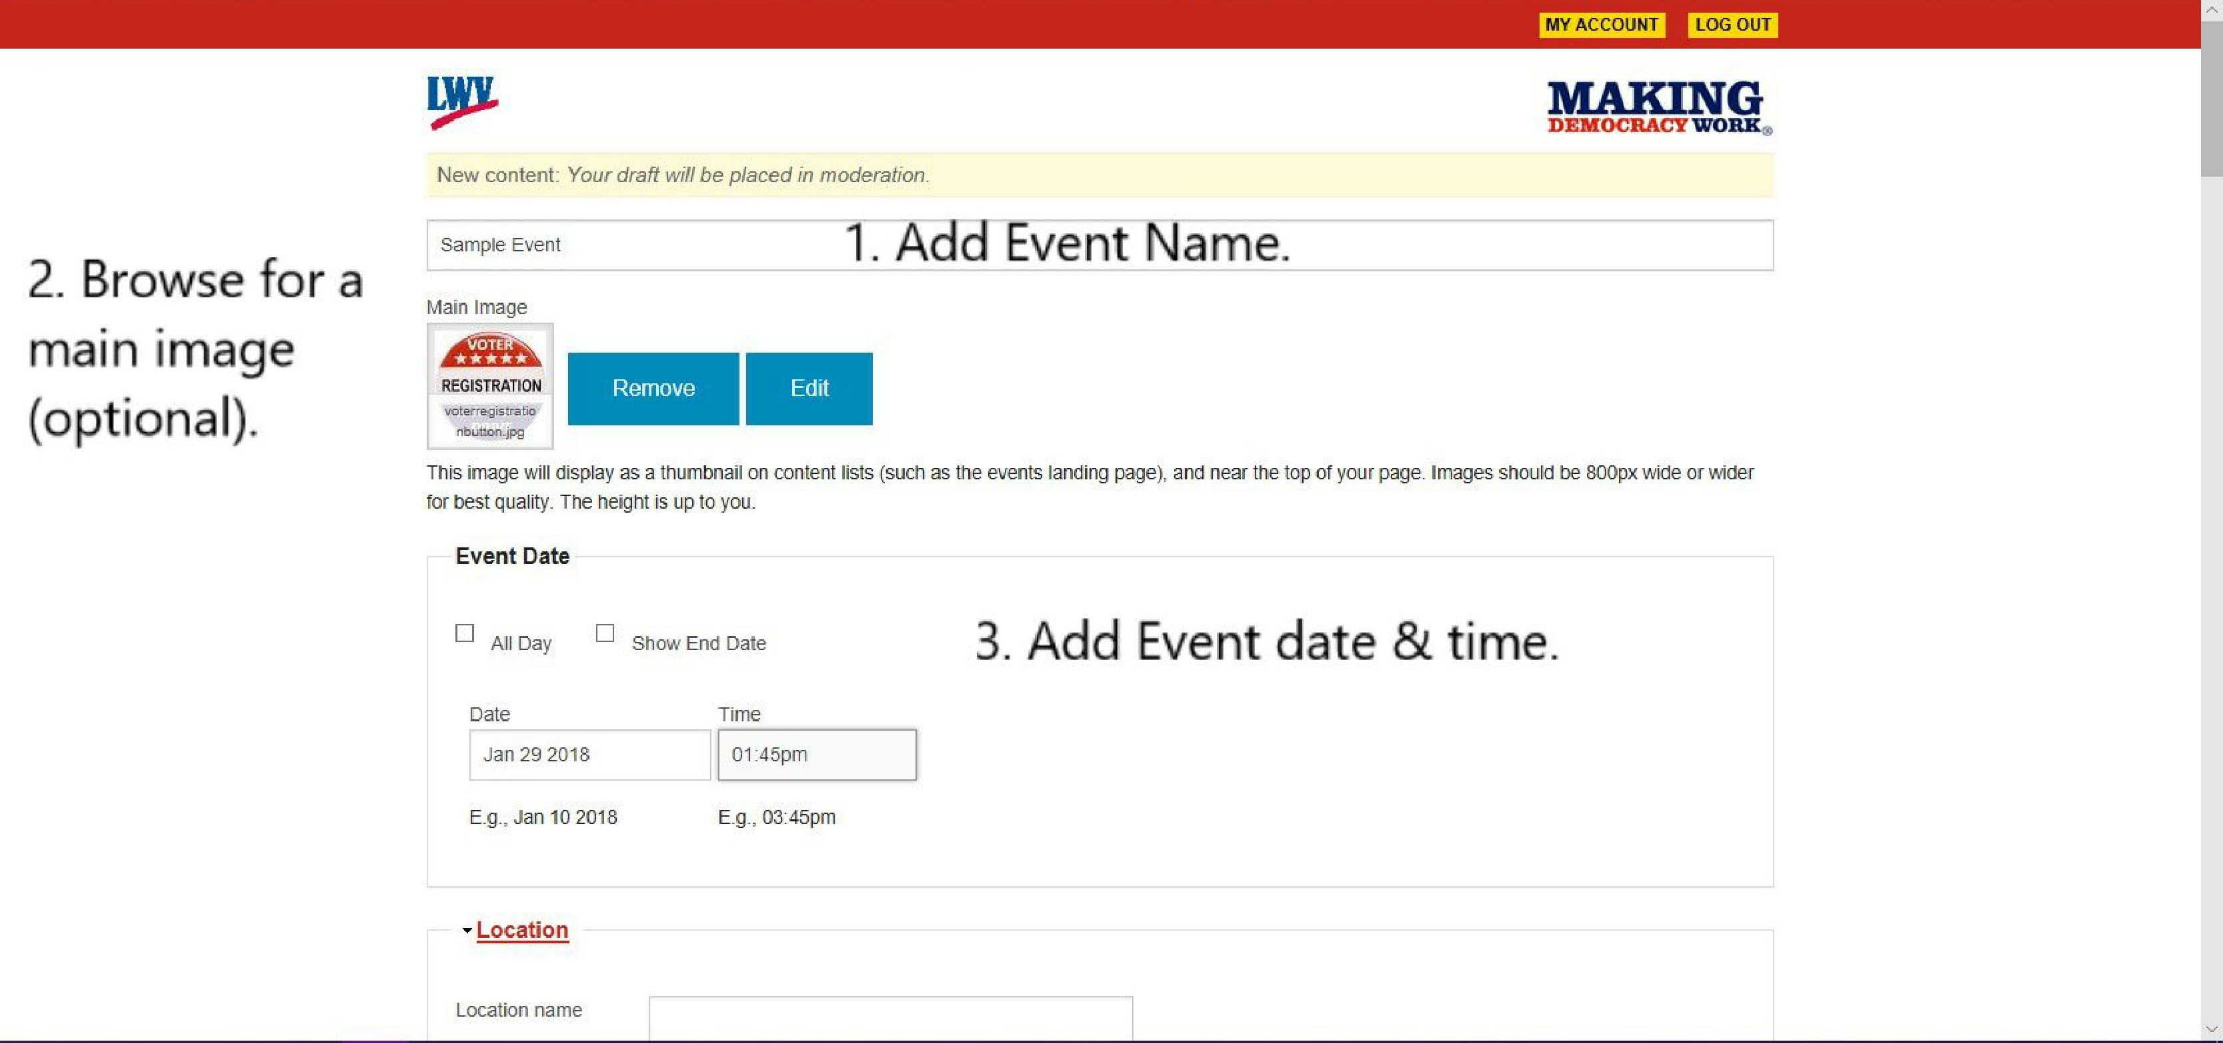 Add Event - add title, main image, & date/time